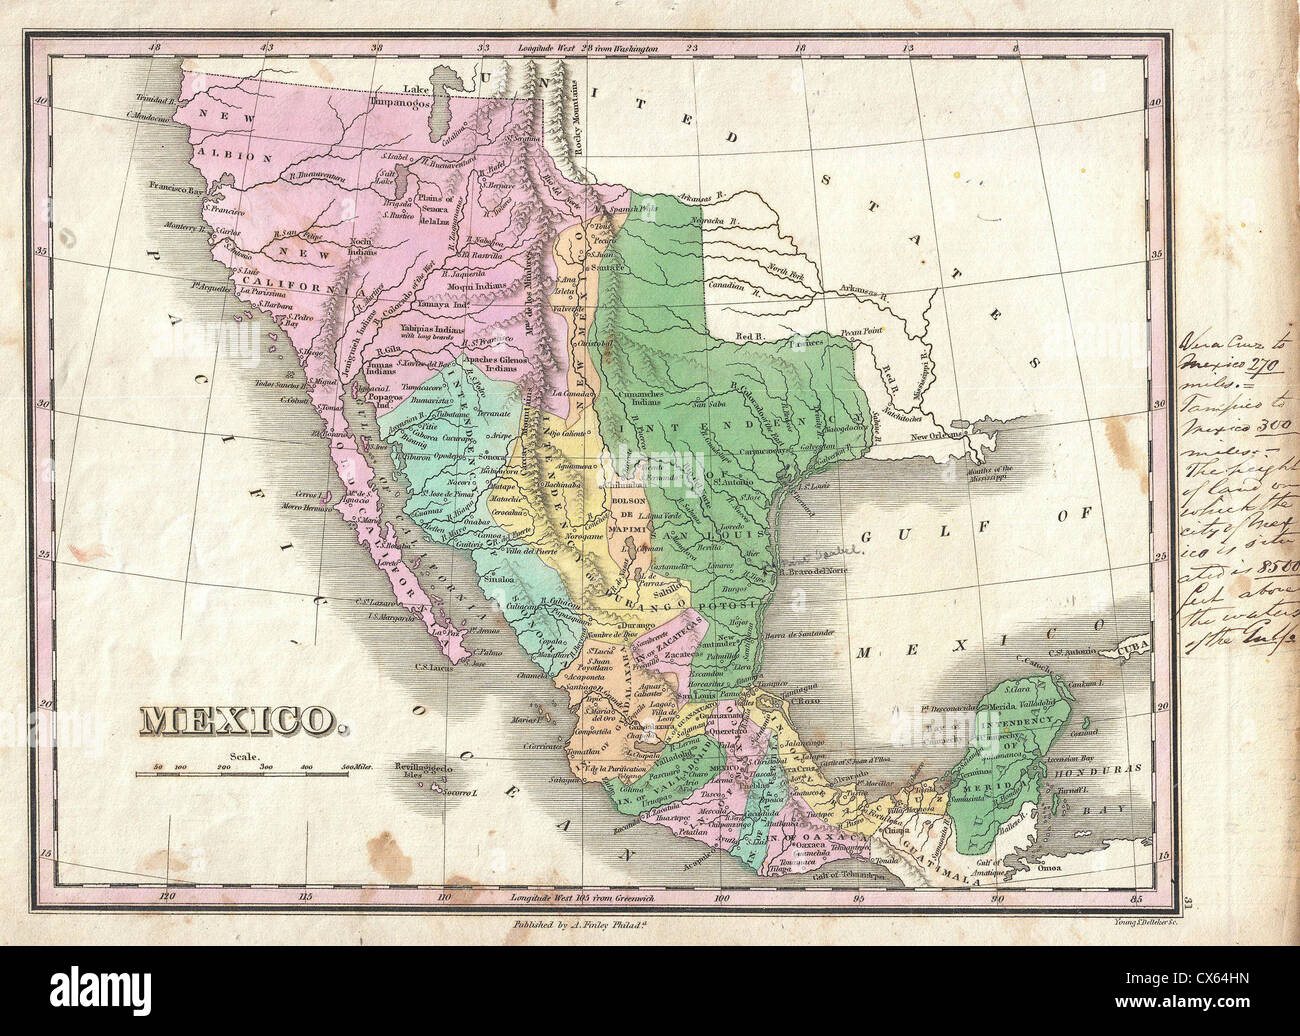 1827 Finley Map of Mexico, Upper California and Texas - Stock Image